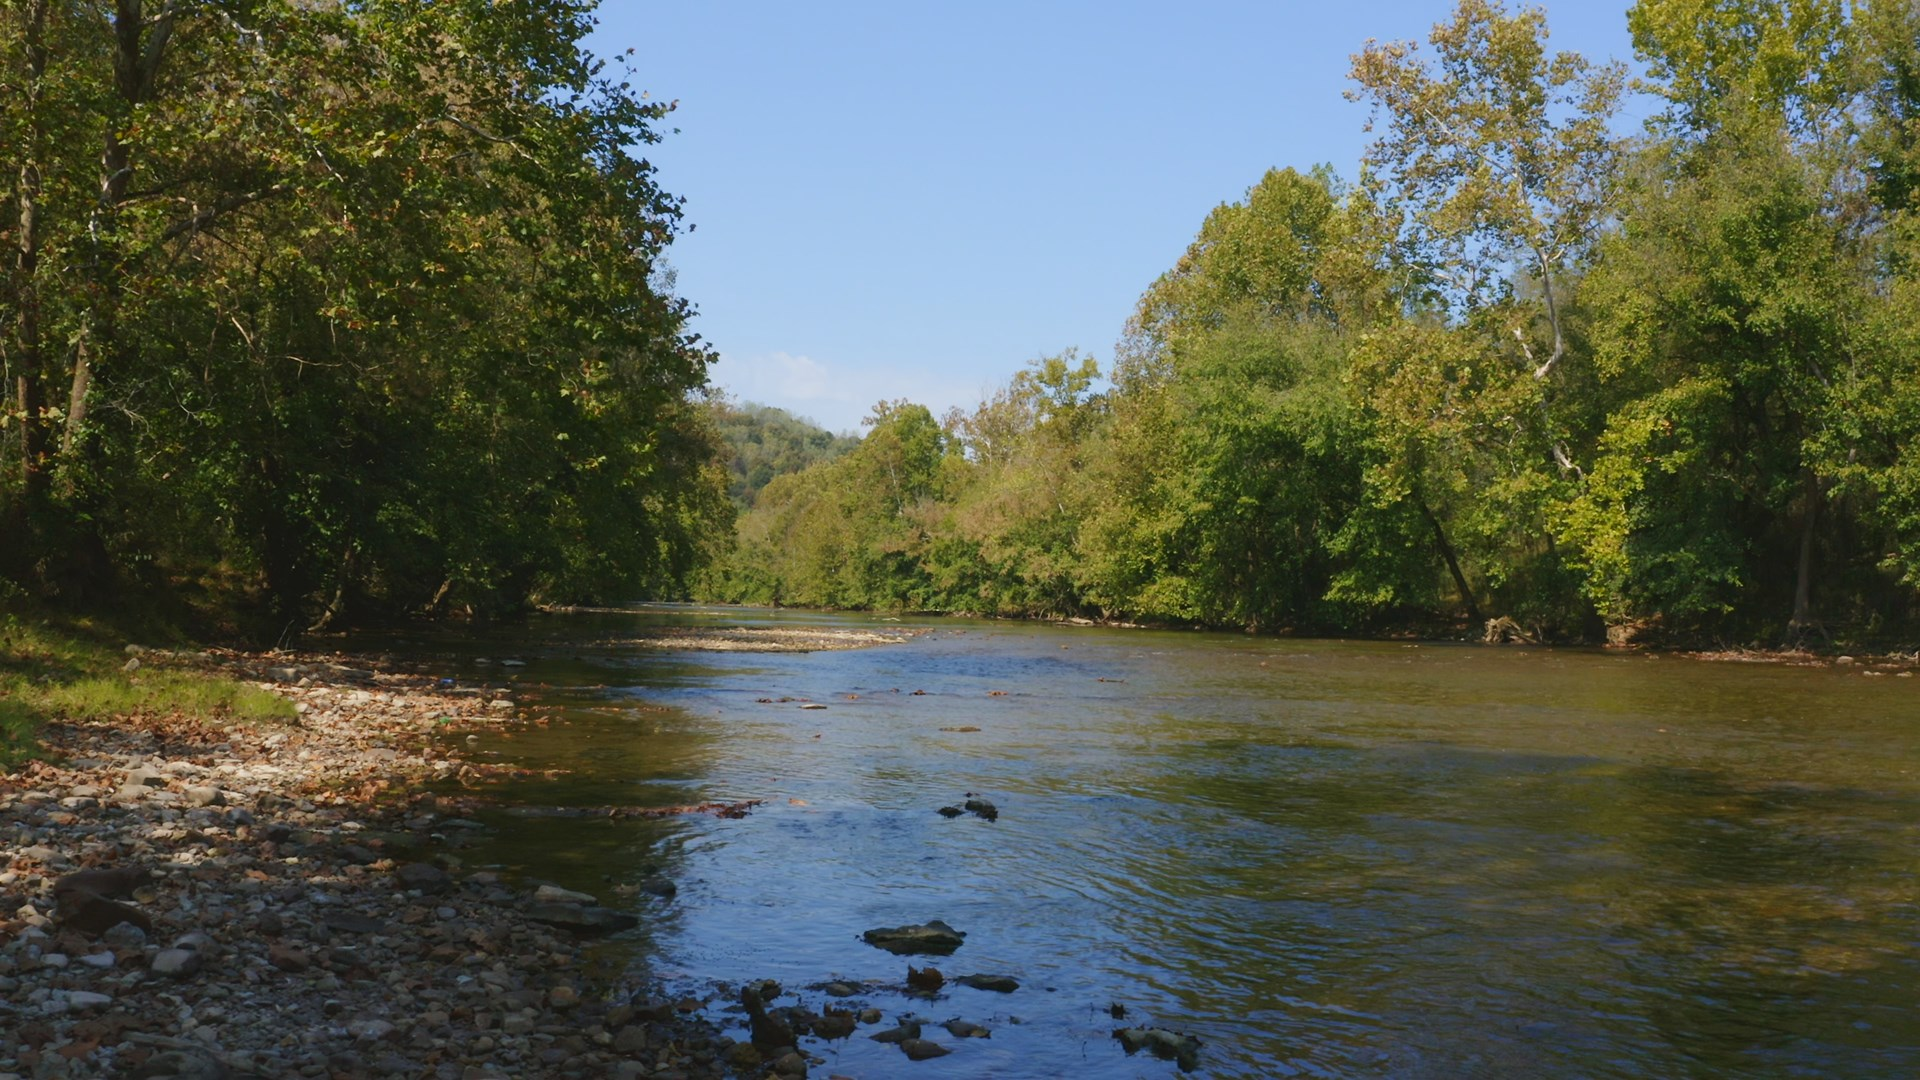 TN Hunting & Recreational Property for Sale Powell River